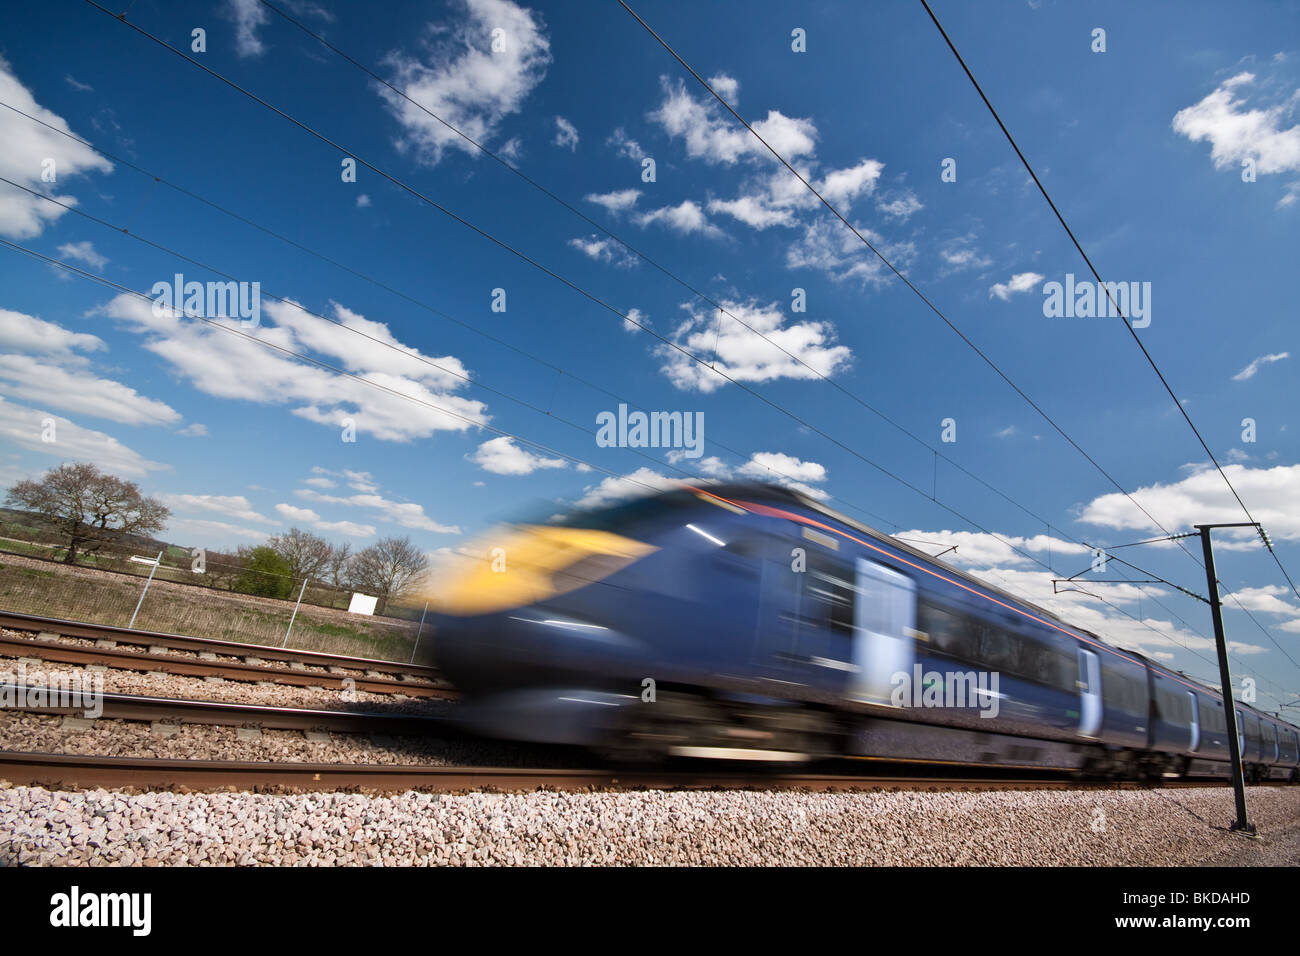 High Speed Train Class 395 on route from Ashford to St Pancras - Stock Image